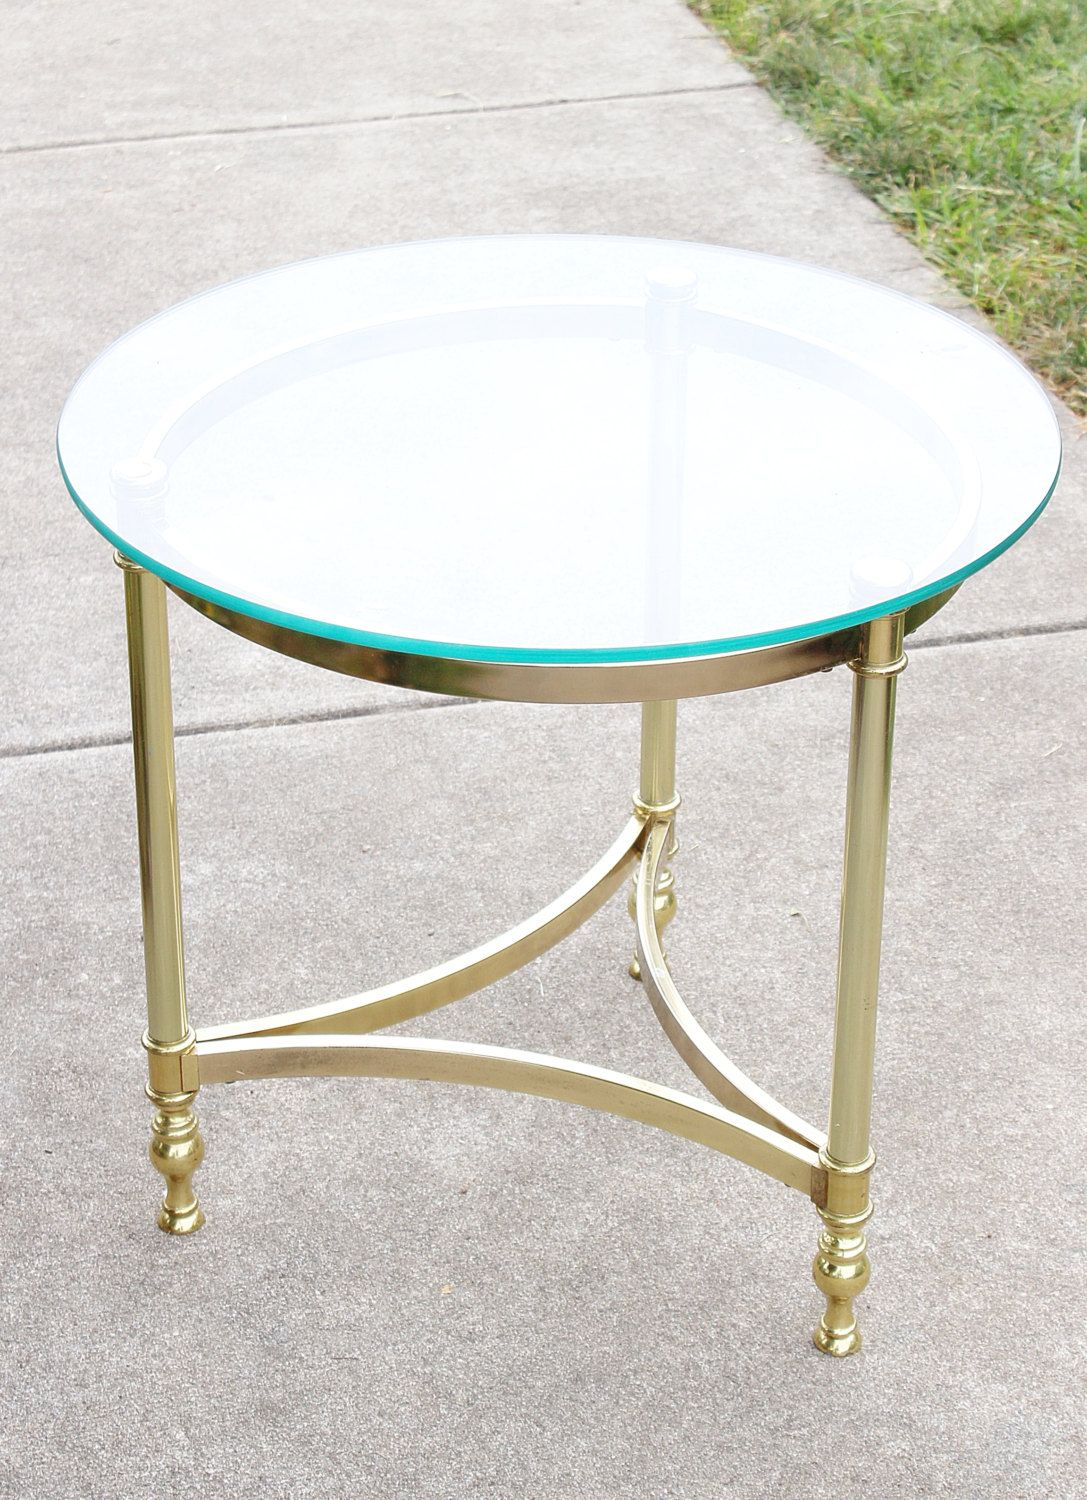 vintage side lamp table steel and brass side lamp table